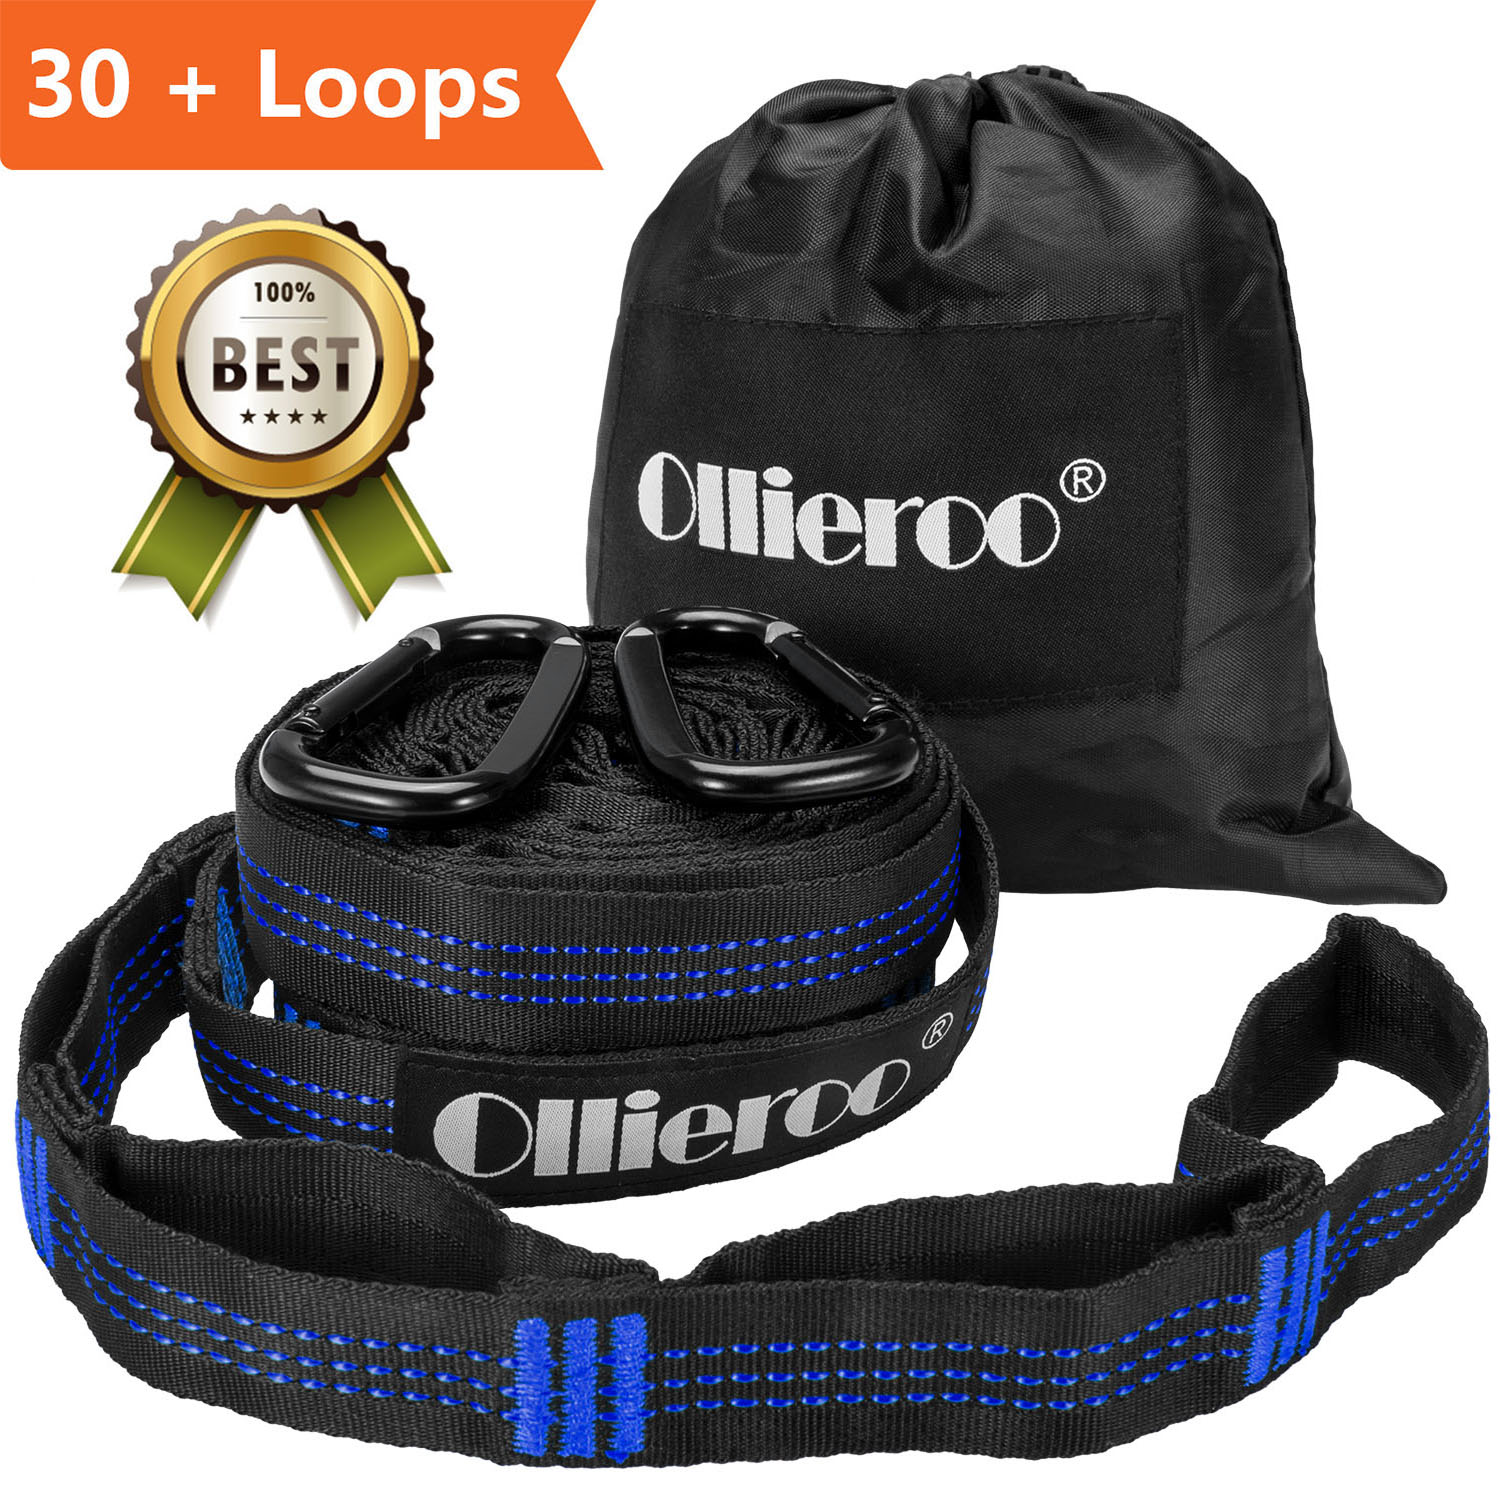 Allieroo Adjustable Hammock Tree Straps Heavy Duty Camping Hammock Security Accessories,2-Pack Blue